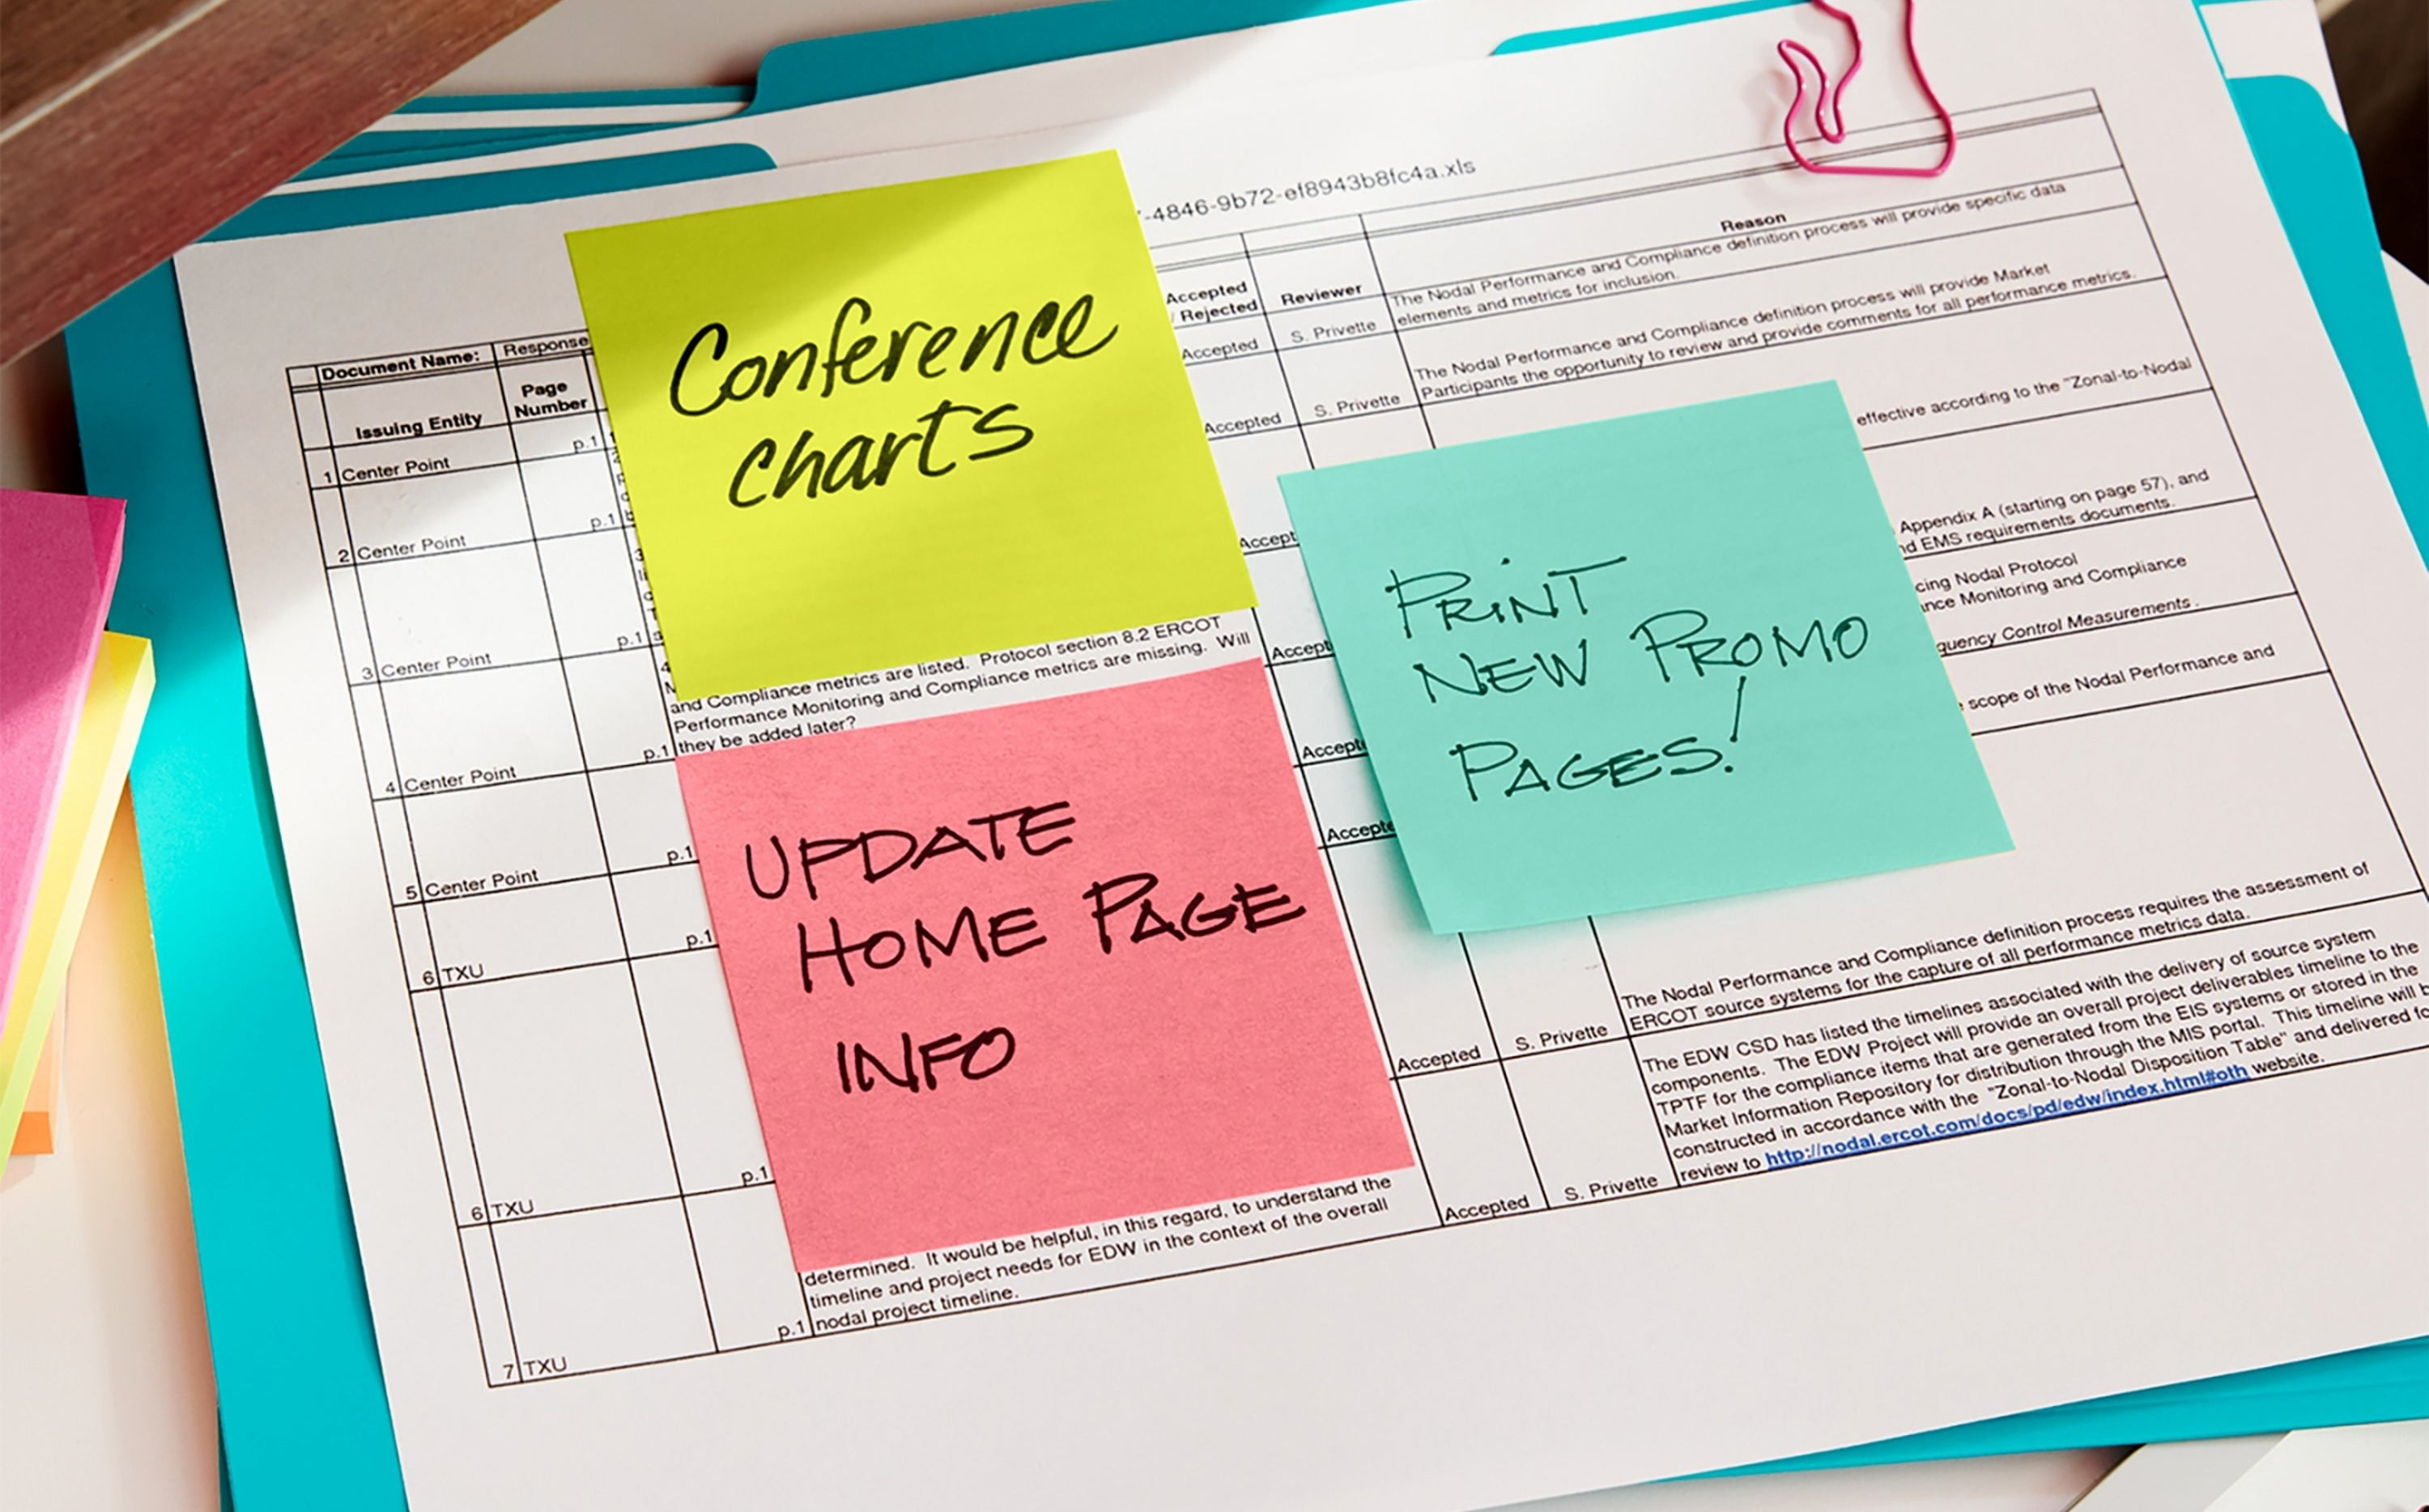 The Post-Its in green, pink, and light blue marking a planner